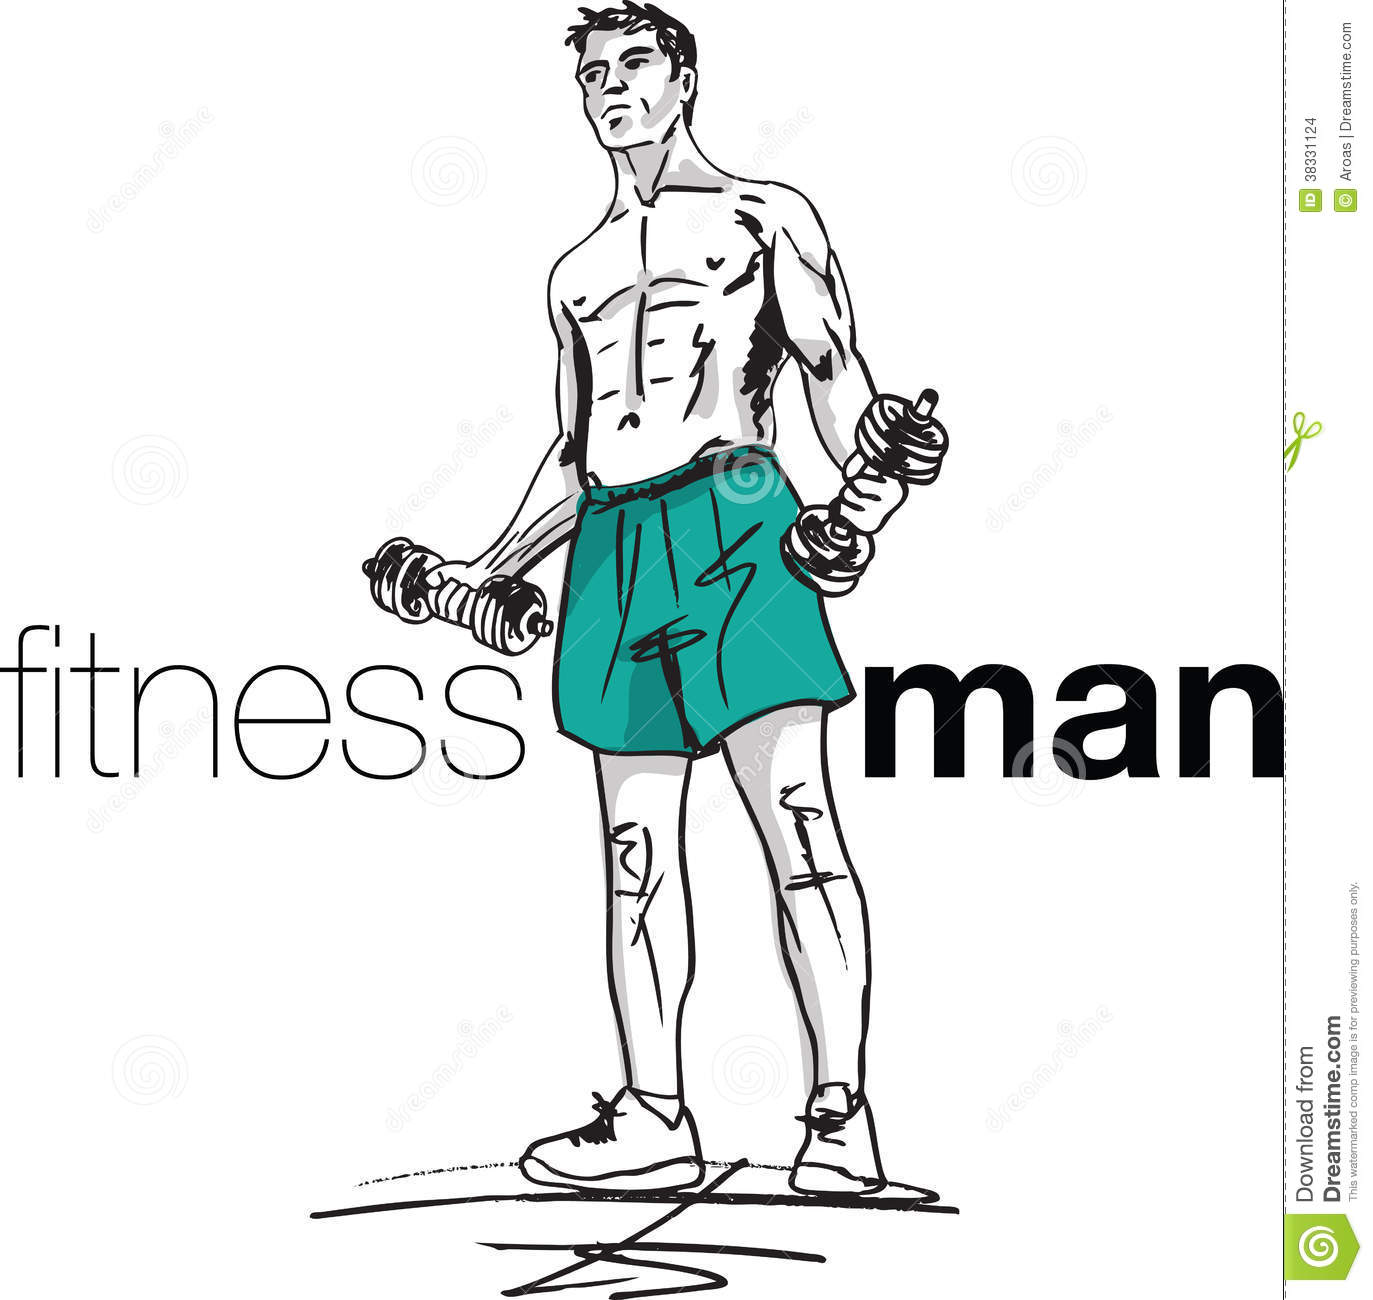 Fit man clipart png black and white library Fitness Man Illustration Stock Images - Image: 38331124 png black and white library